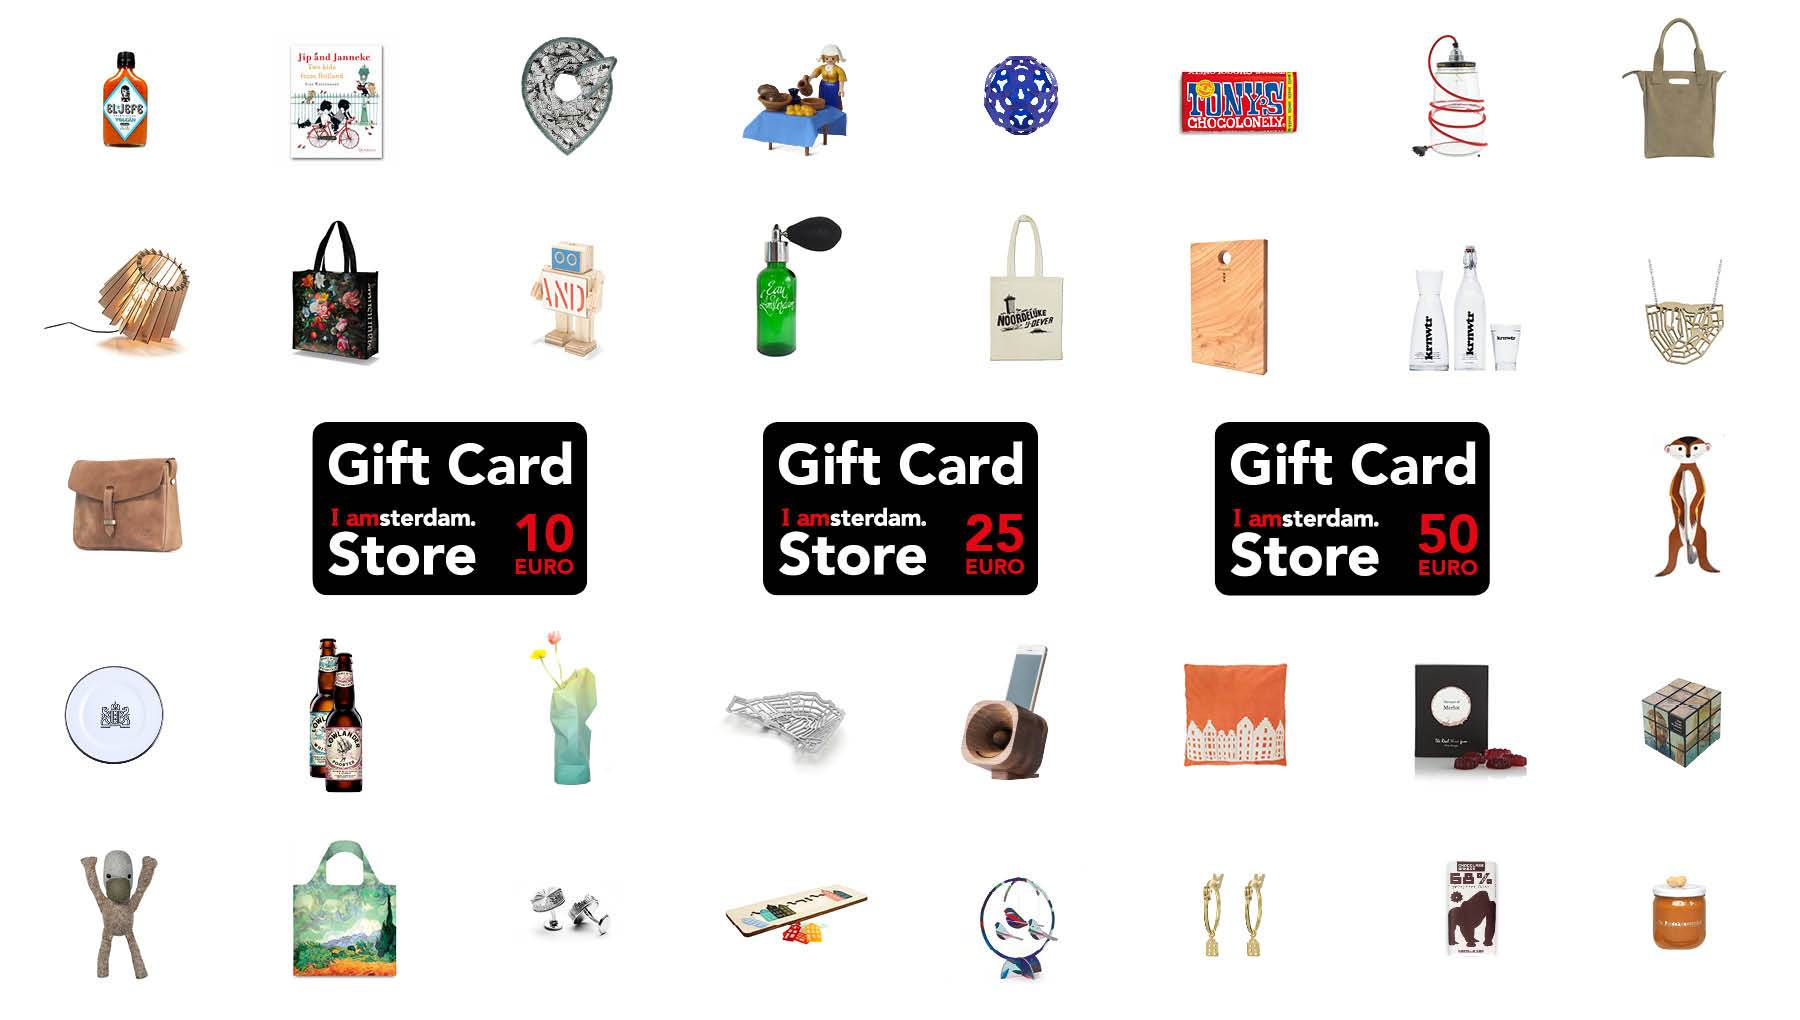 Top 5 Gifts For Christmas I Amsterdam Mao Mini Market Playset Pink Store Gift Card